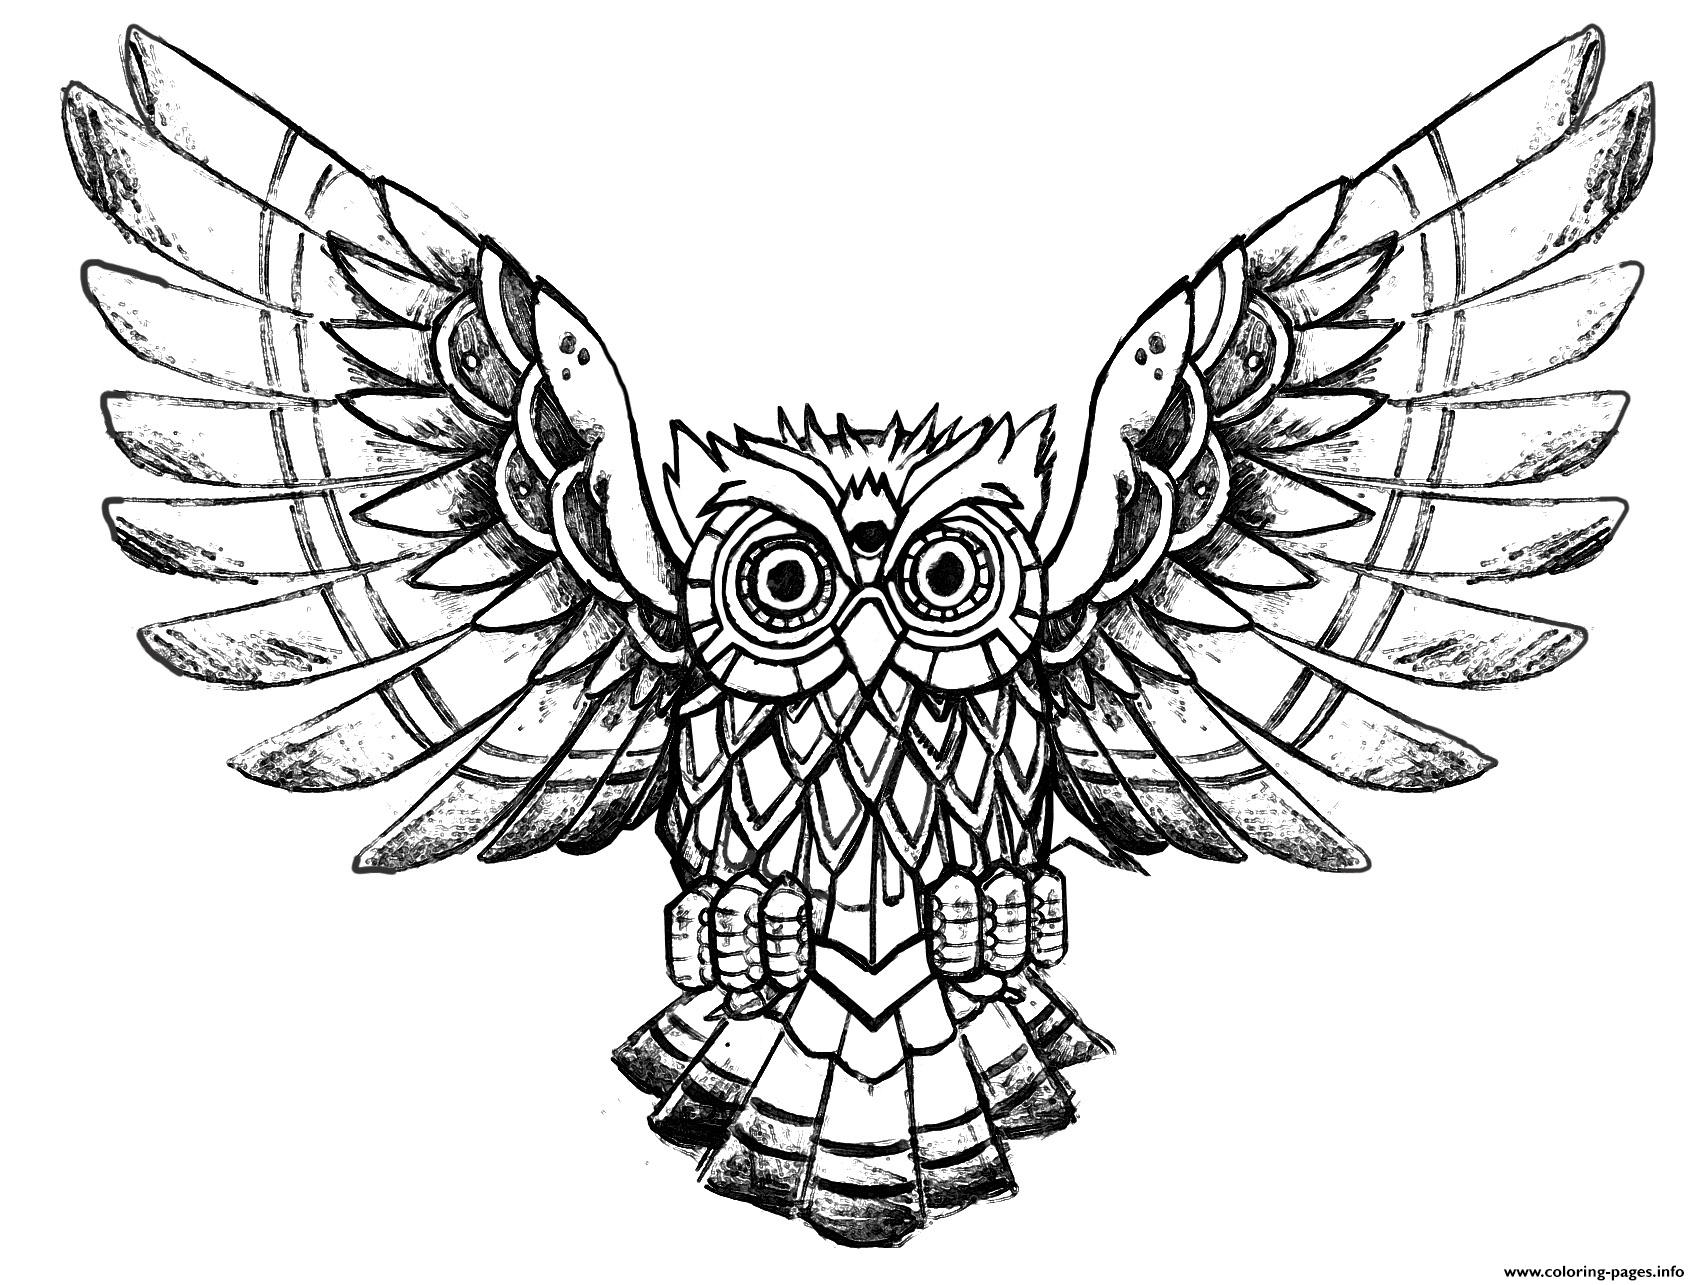 Advanced Owl Raw Drawing Coloring Pages Printable